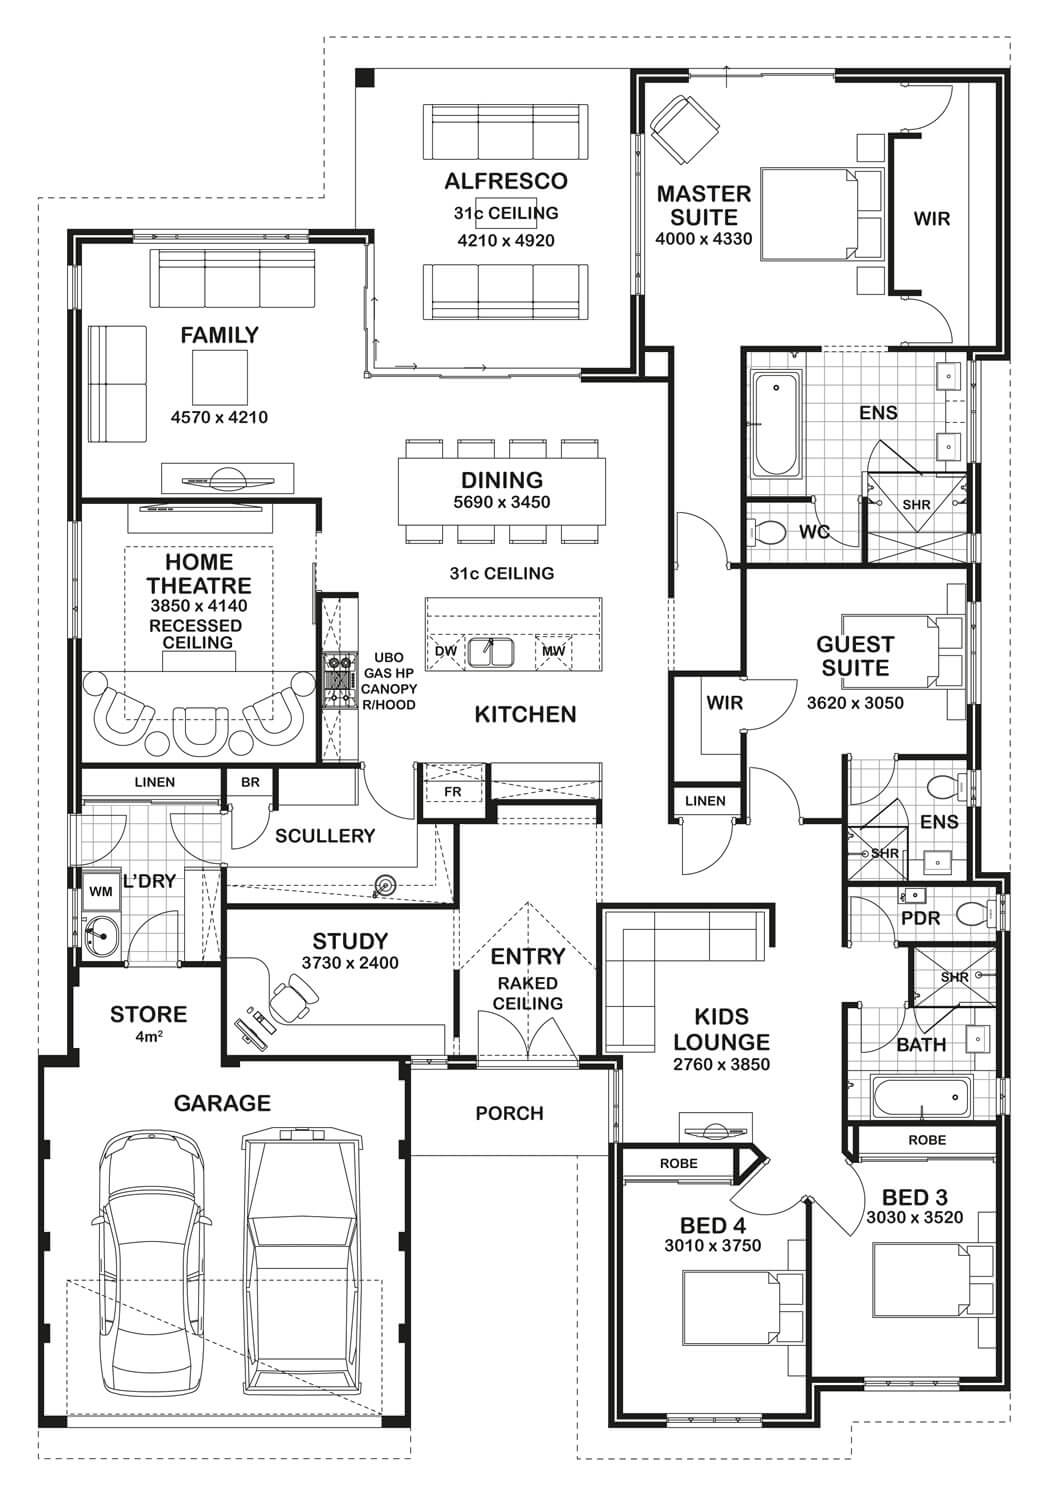 floor plan friday storage laundry scullery katrina chambers